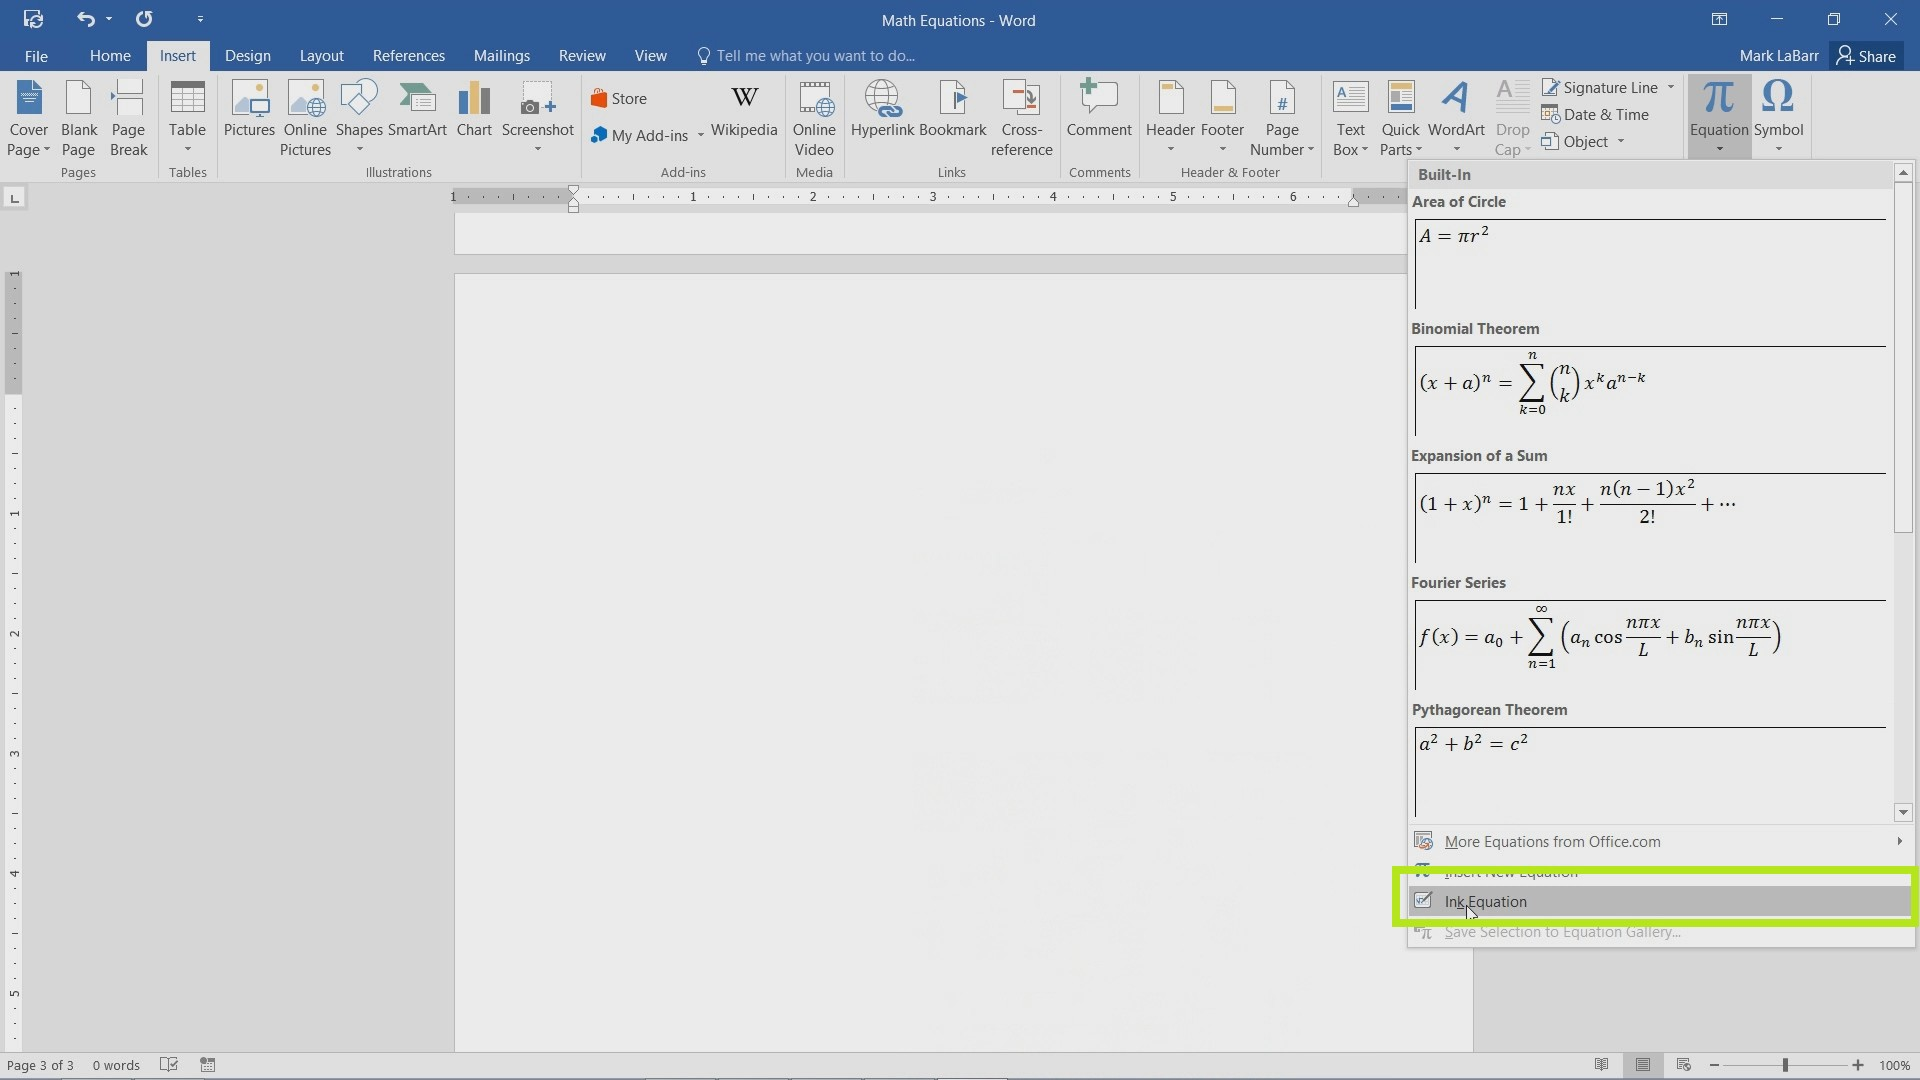 Create Equations in Word 2016